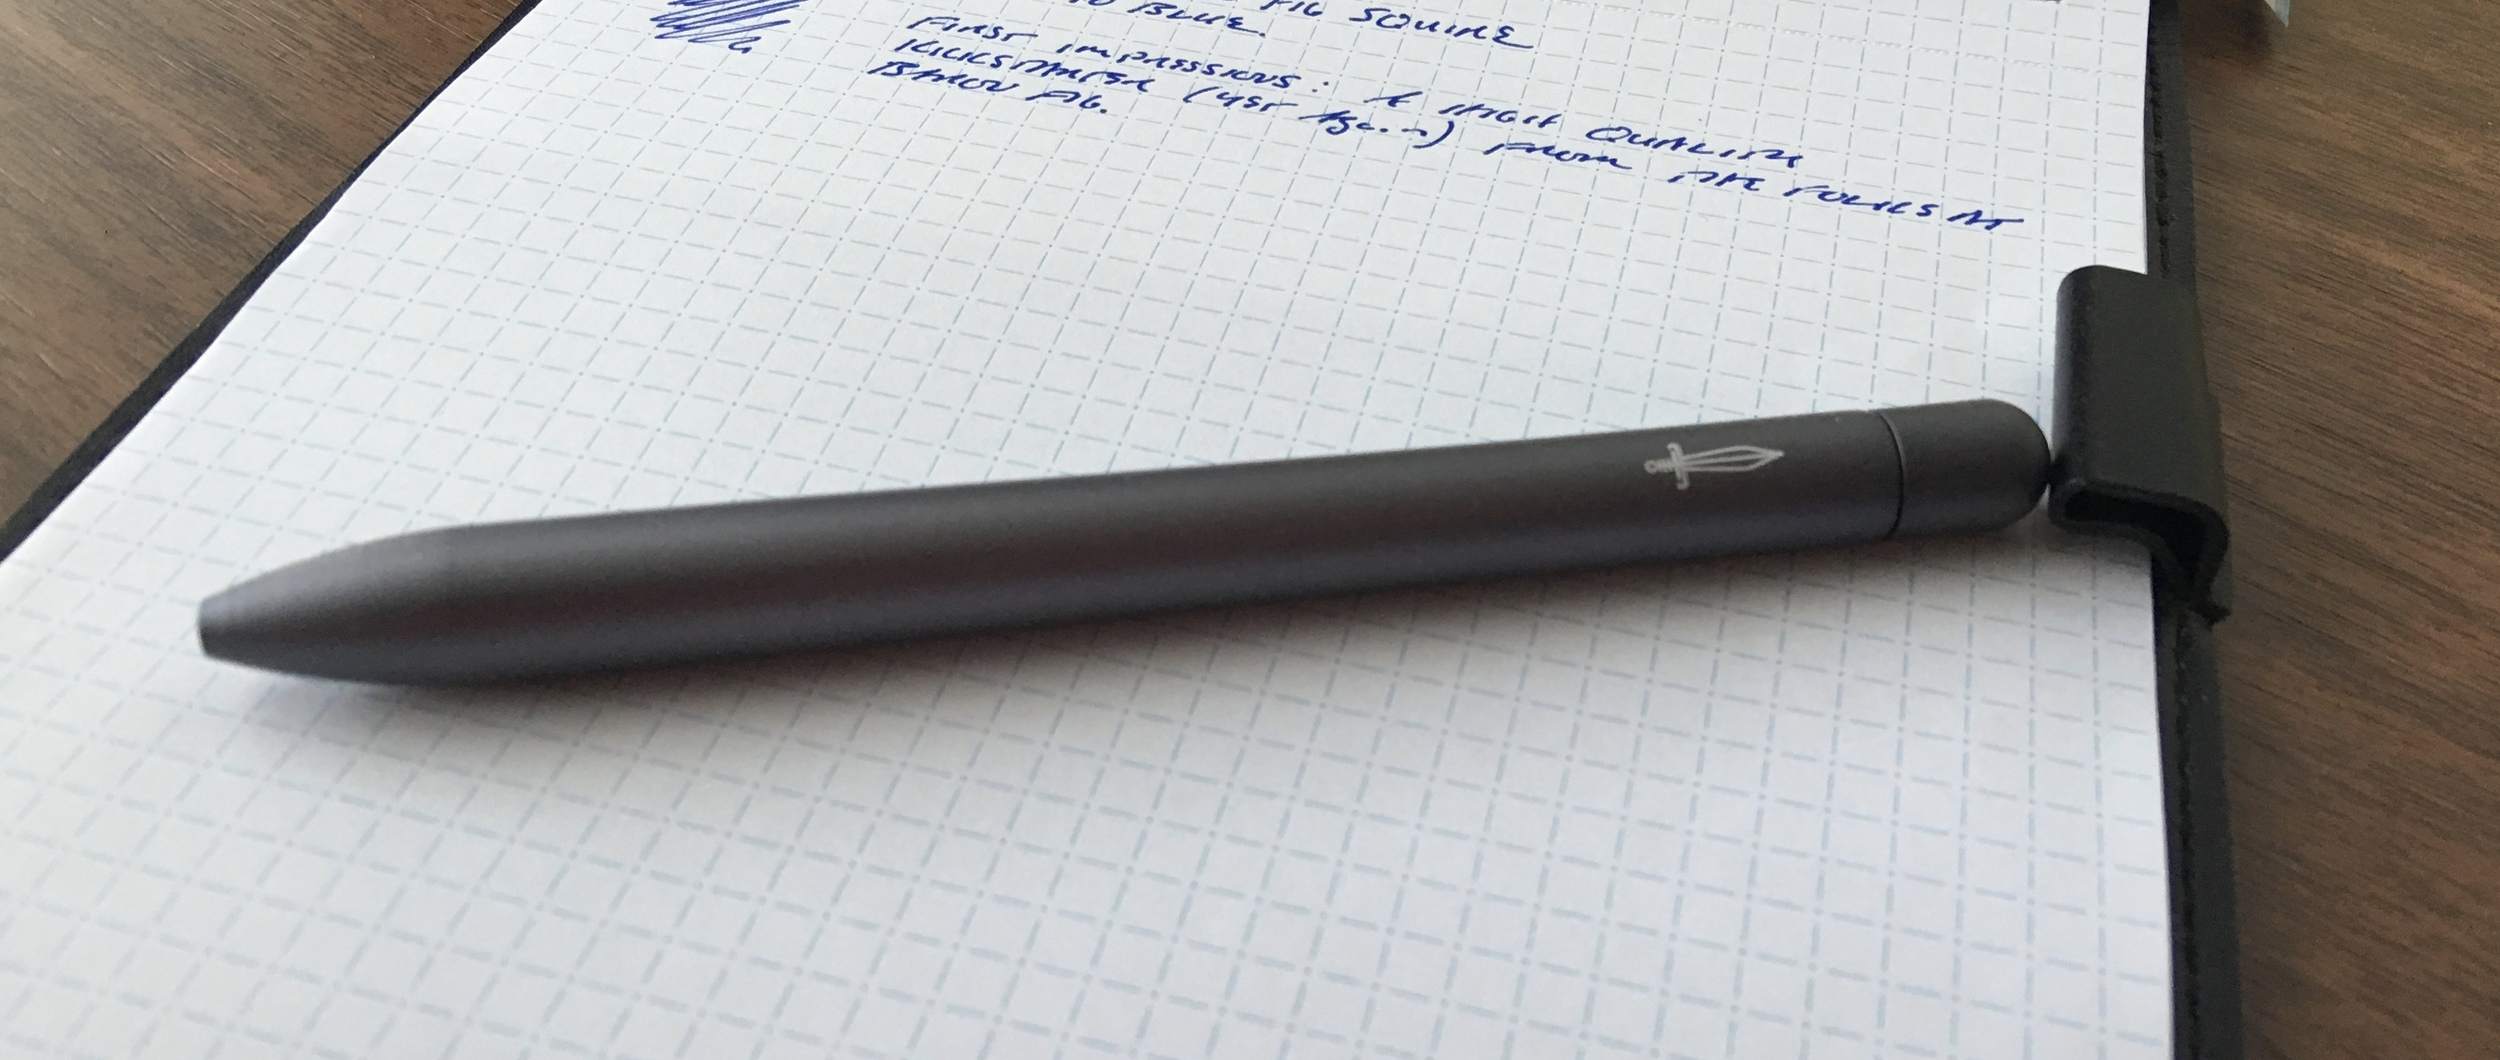 The Baron Fig Squire is an excellent liquid ink rollerball option, especially if you like the refill used in the Retro 51 Tornado.